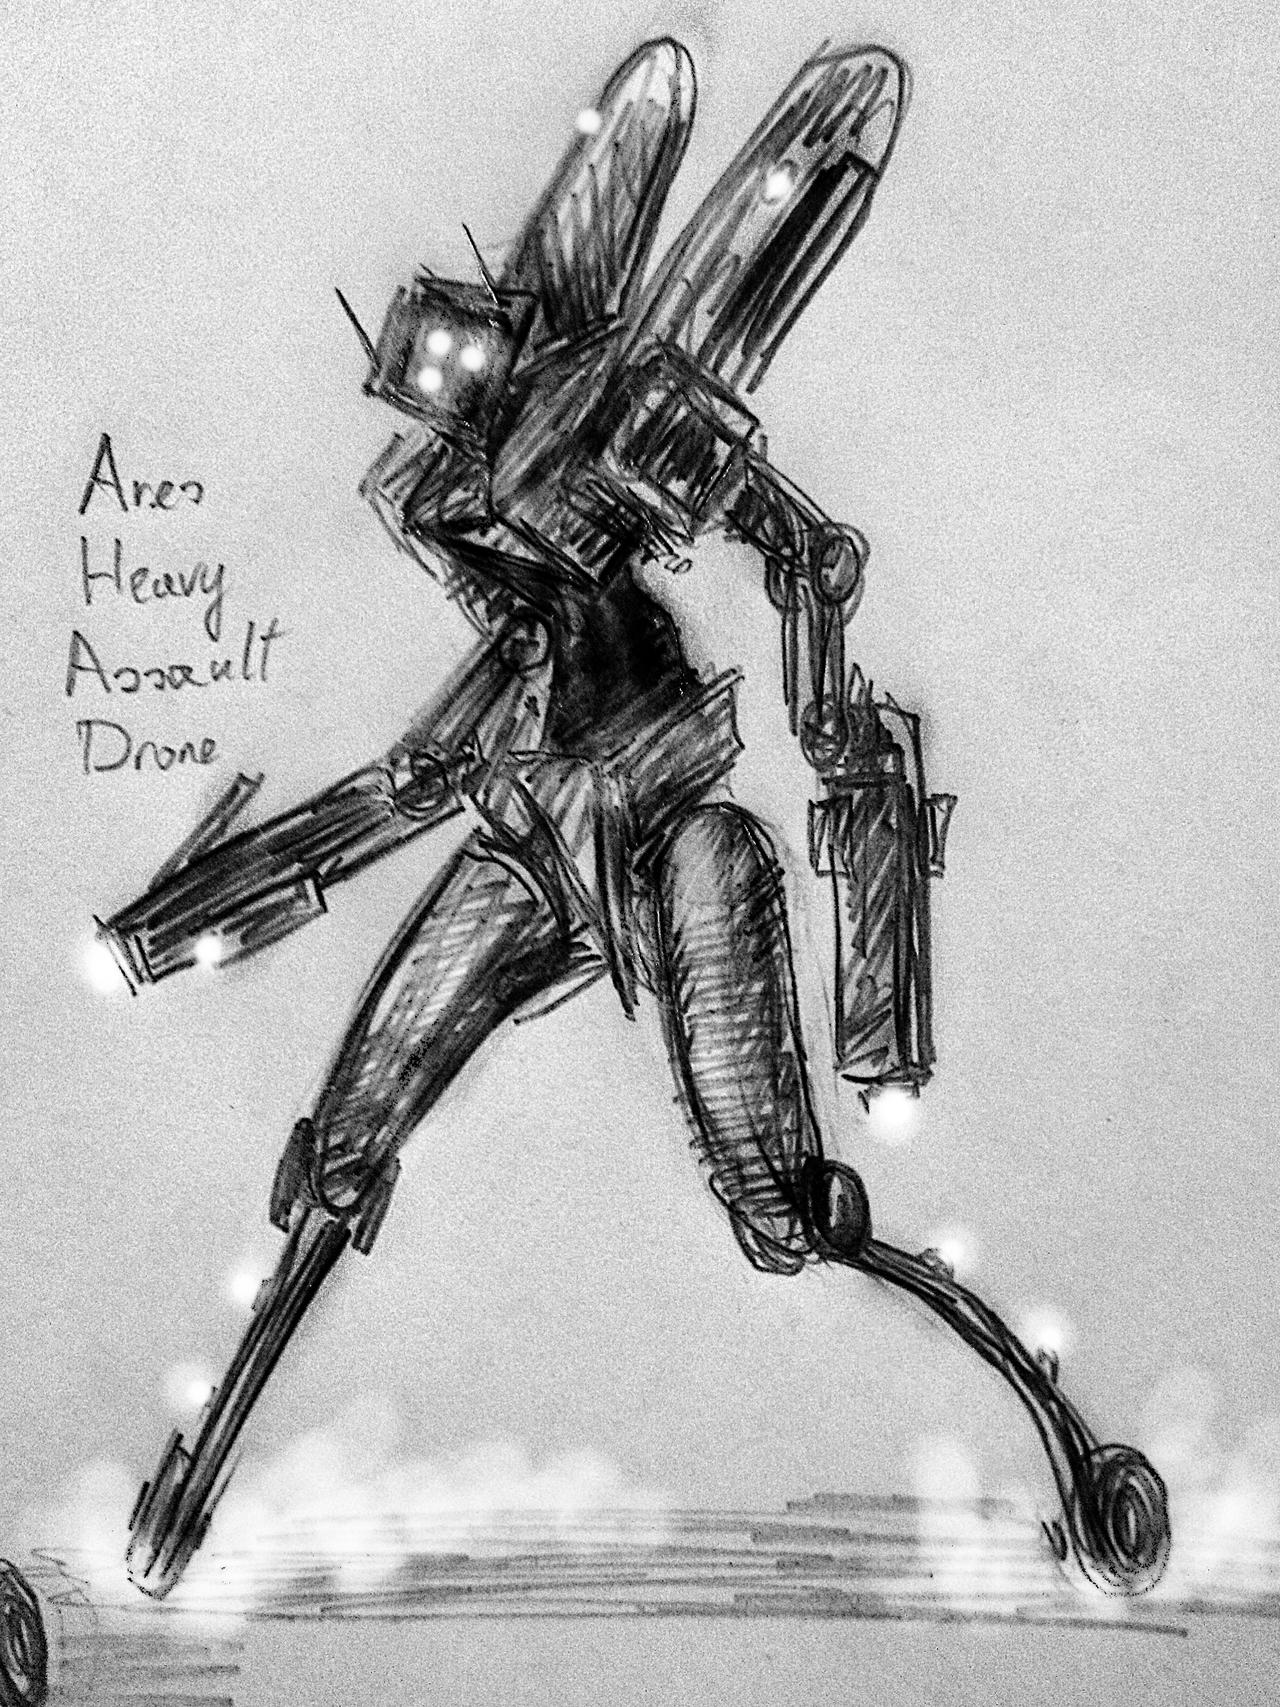 ares_heavy_assault_drone_by_huginthecrow